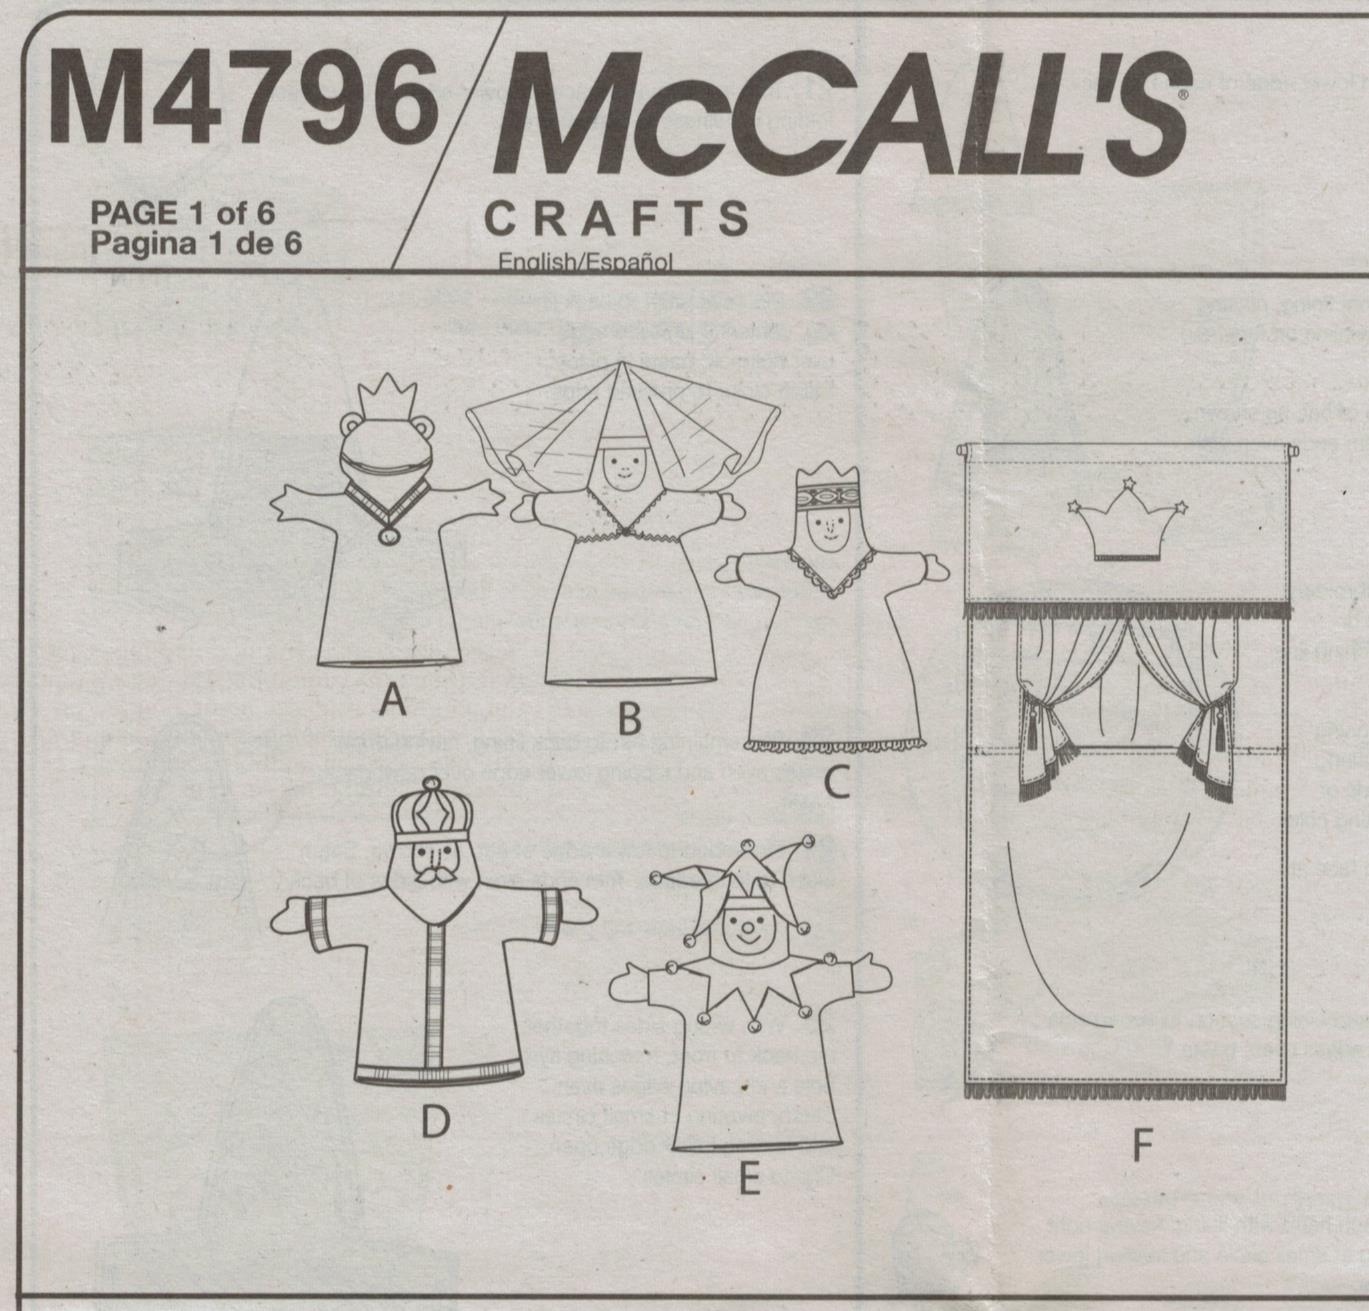 McCalls Pattern 4796 Fairy Tale Story Book Puppet Theatre